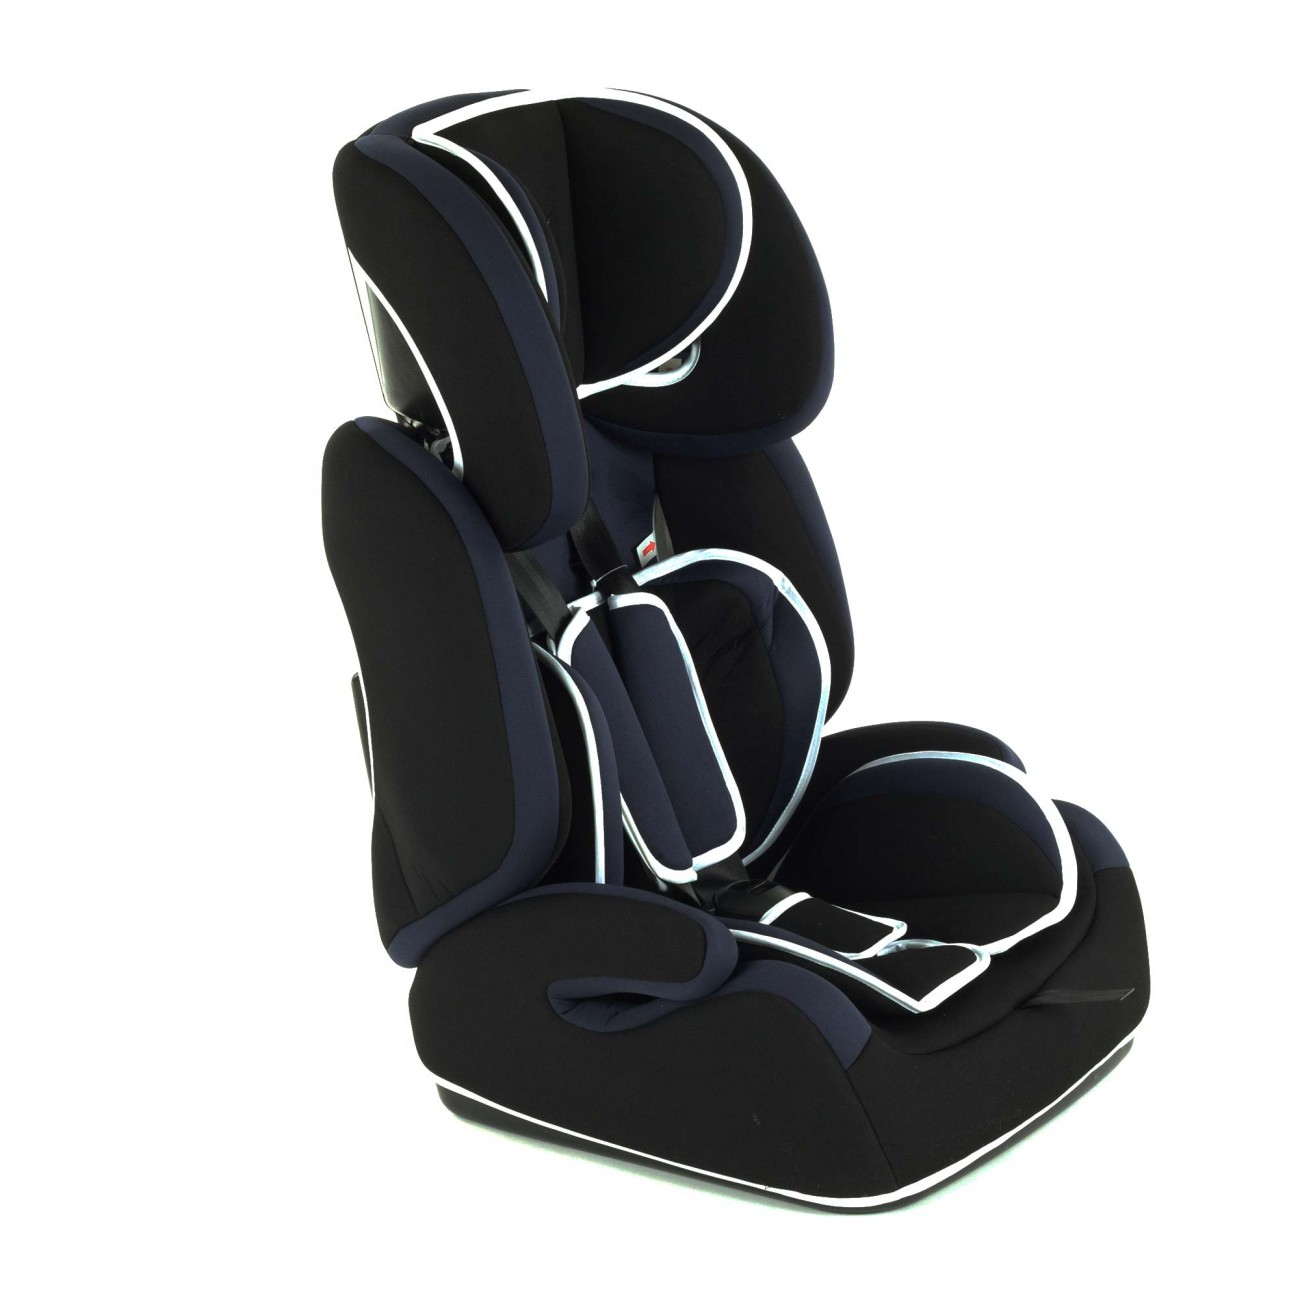 baby vivo si ge auto pour enfants tom groupe 1 2 3 de 9 36 kg en bleu noir b b enfant. Black Bedroom Furniture Sets. Home Design Ideas